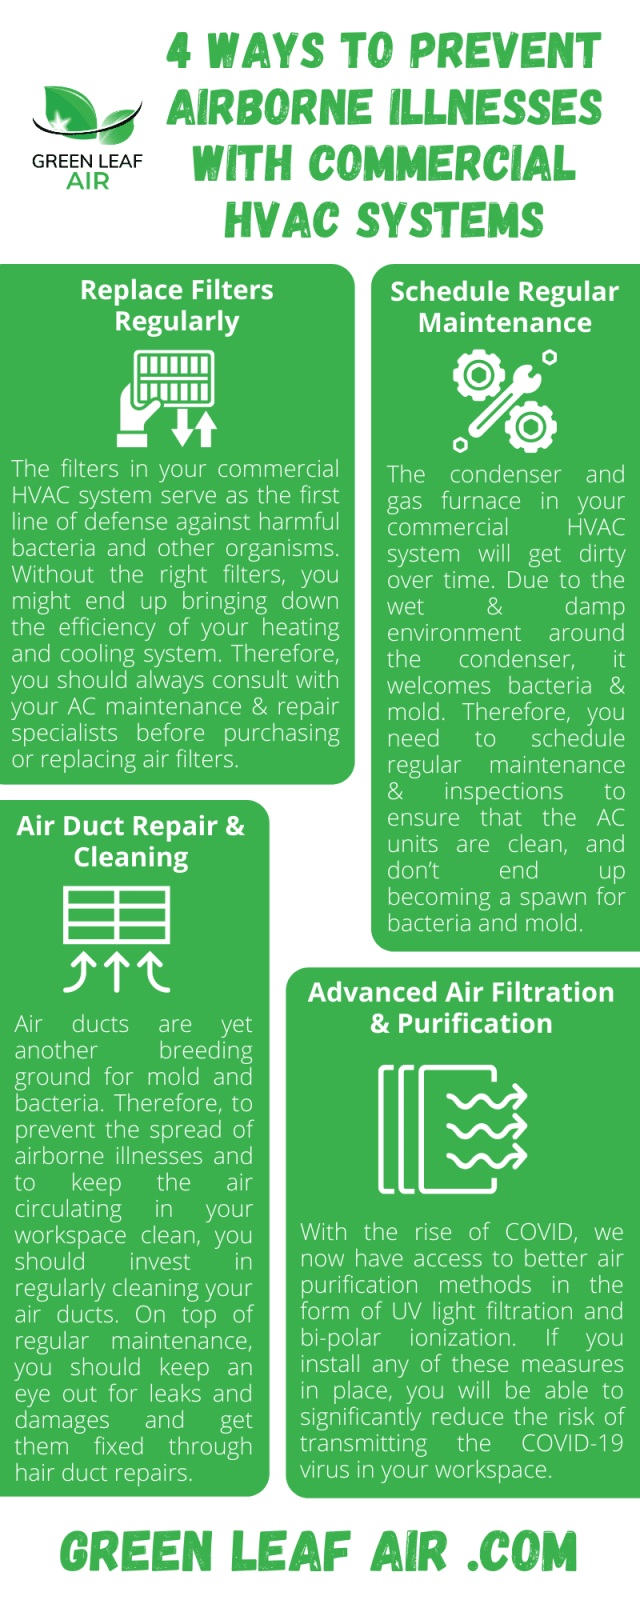 4 Ways to Prevent Airborne Illnesses with Commercial HVAC Systems